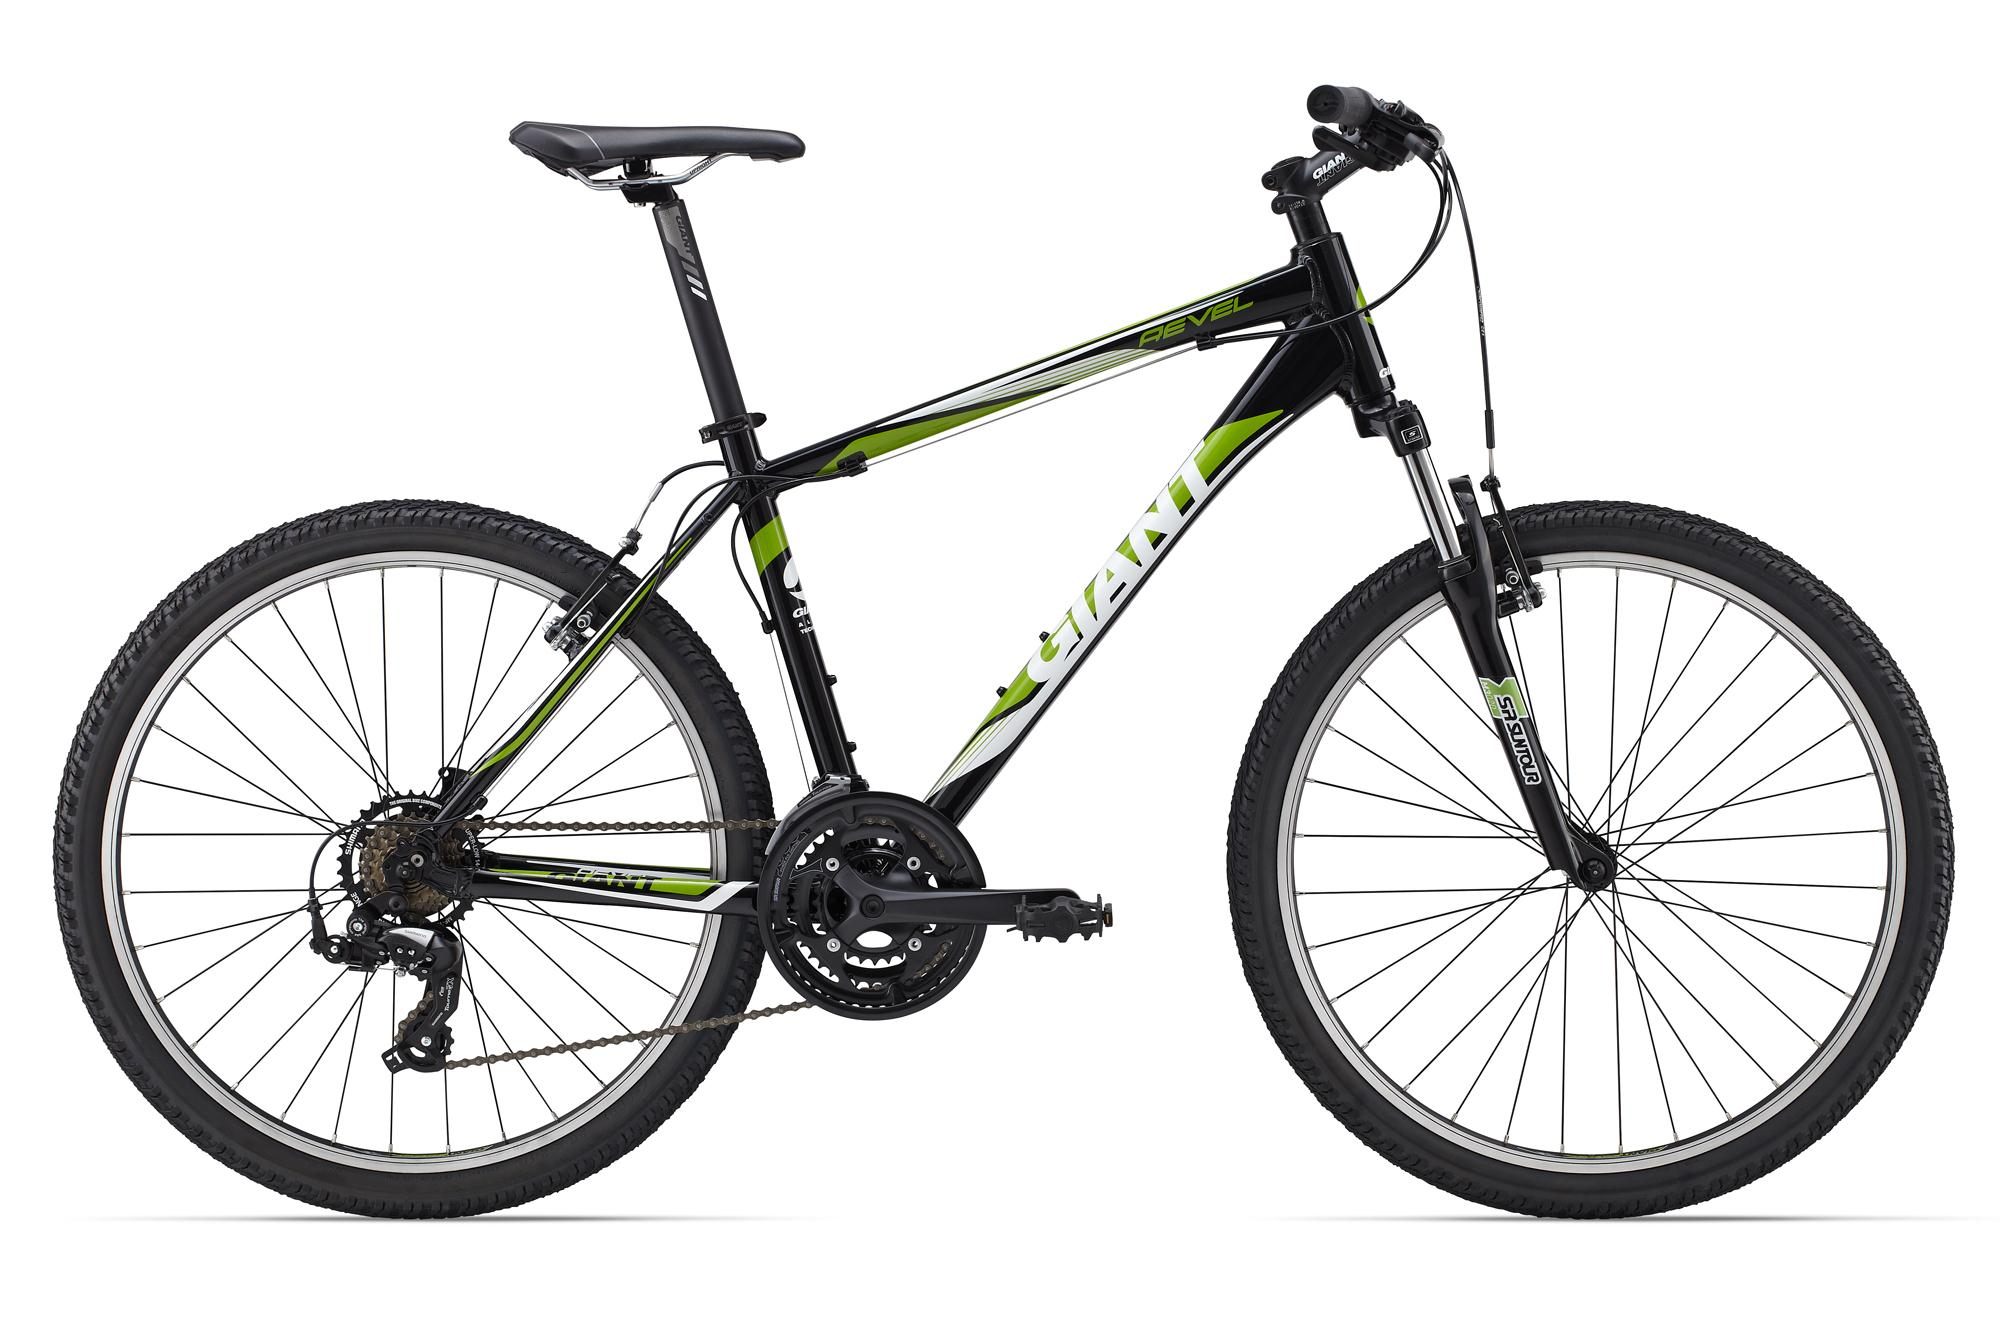 http://www.giant-bicycles.com/_generated/_generated_ua/bikes/models/images/2000/2015/Revel_3_Black-Green.jpg